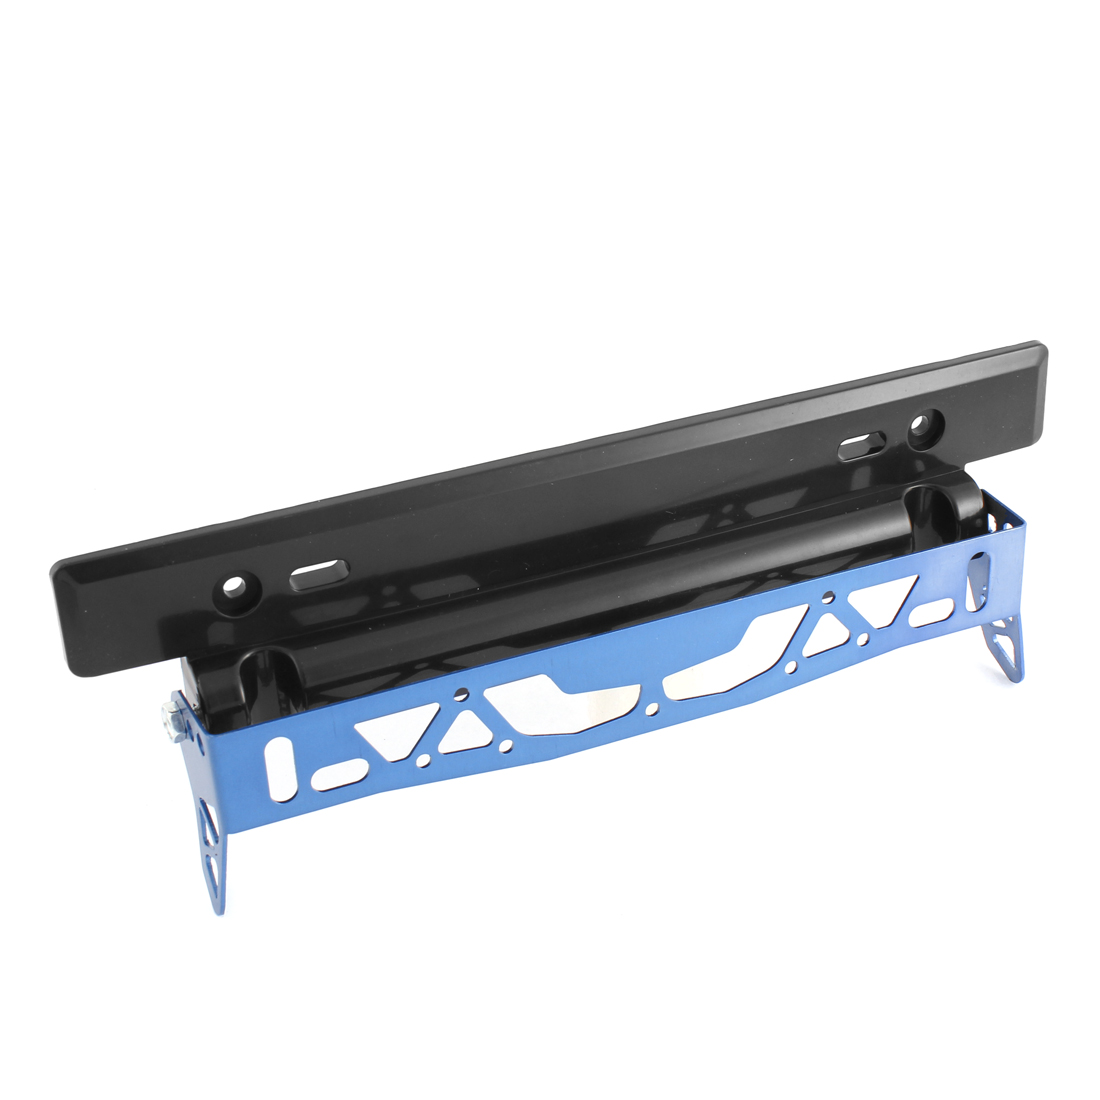 Blue Black Metal Plastic Adjustable Car License Plate Frame Bracket Holder